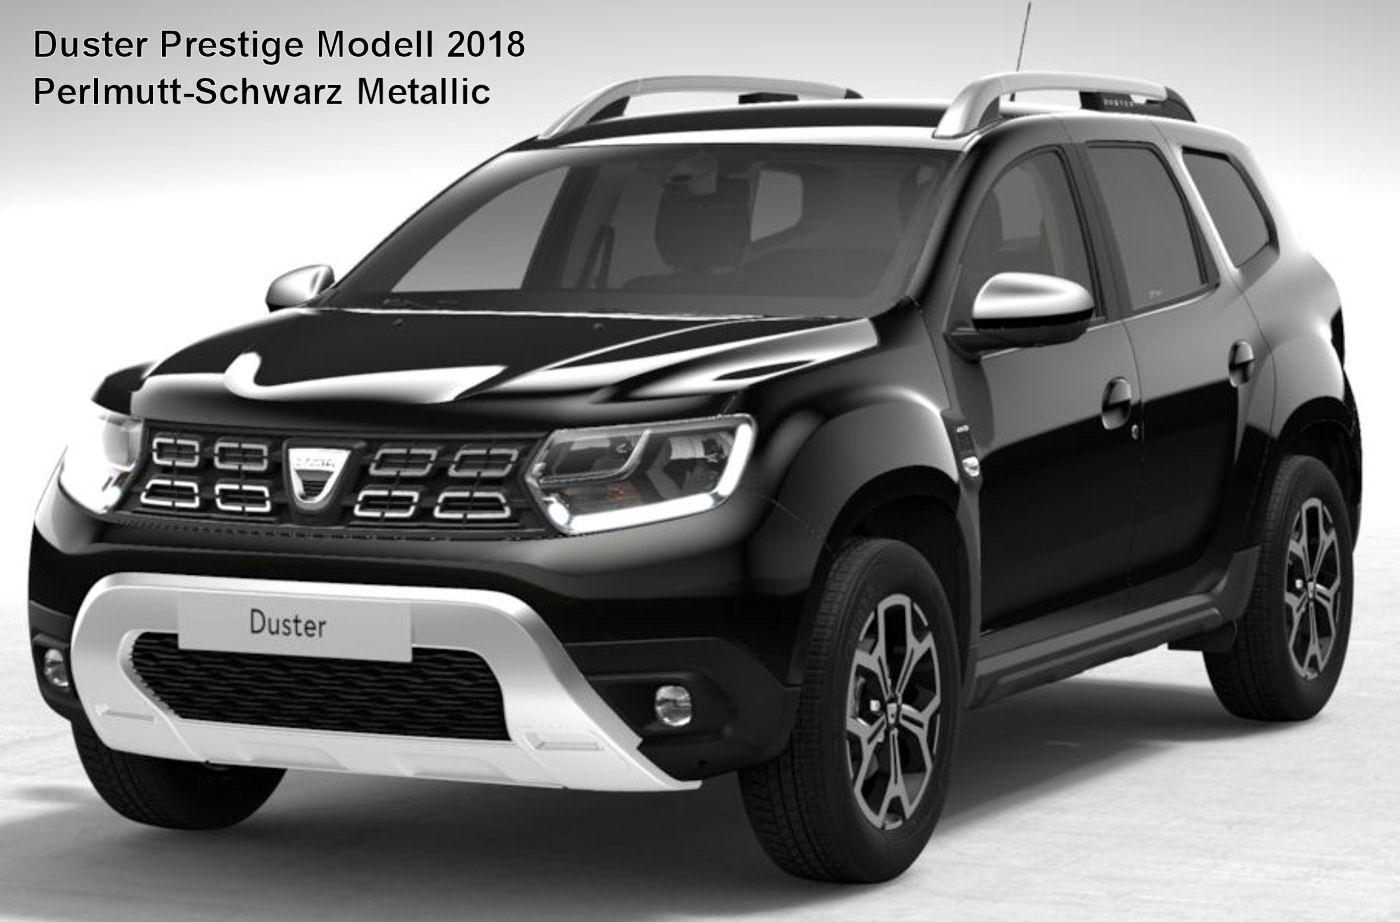 dacia duster prestige tce 125 allrad auto goldammer. Black Bedroom Furniture Sets. Home Design Ideas